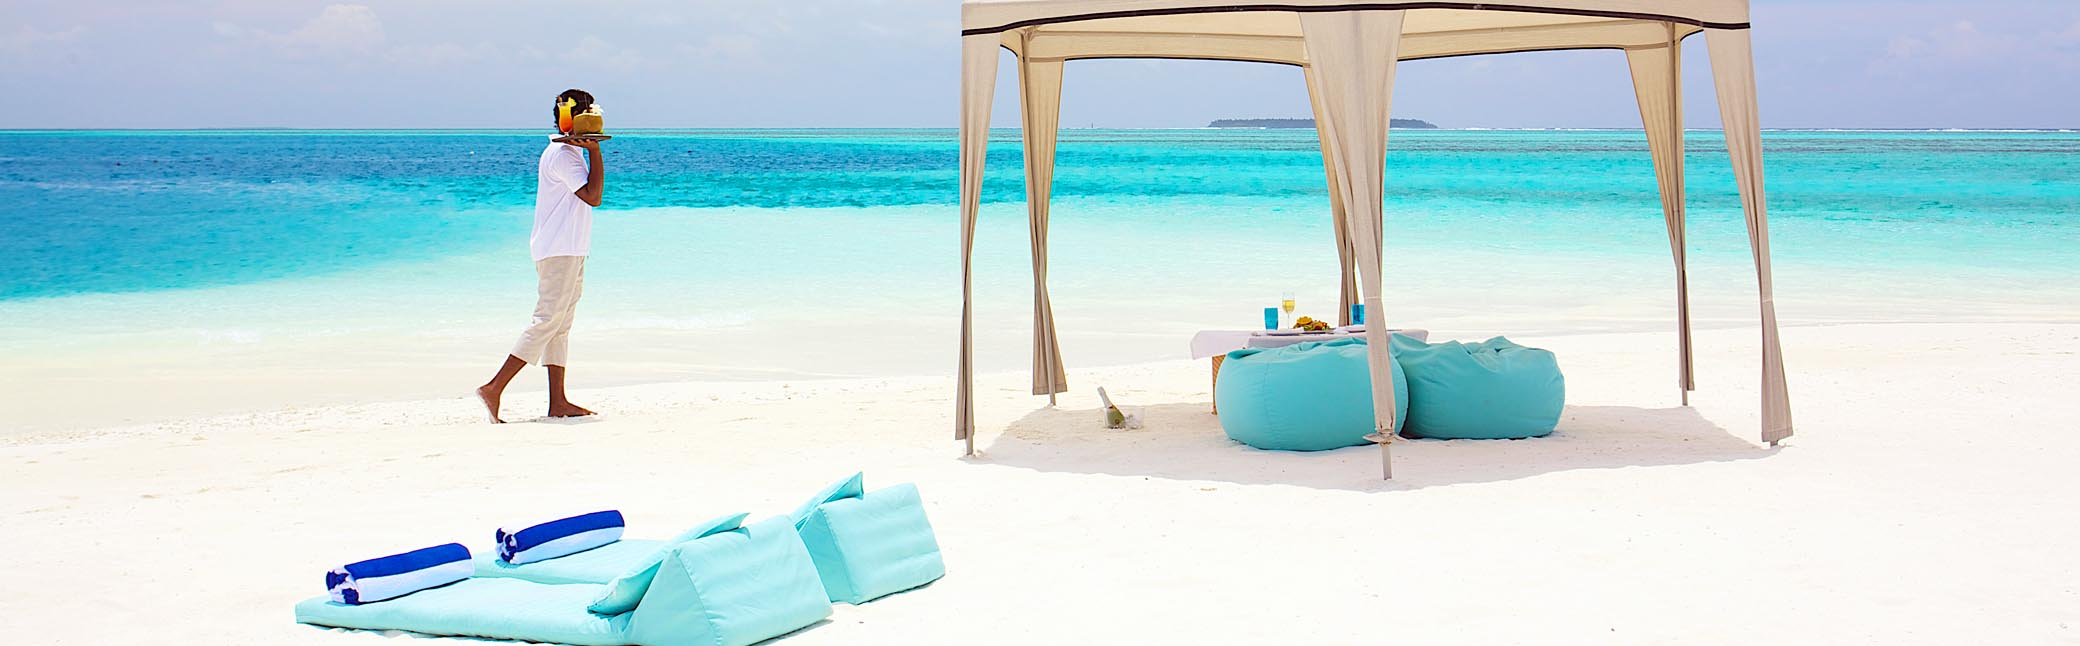 Luxury Maldives Resorts